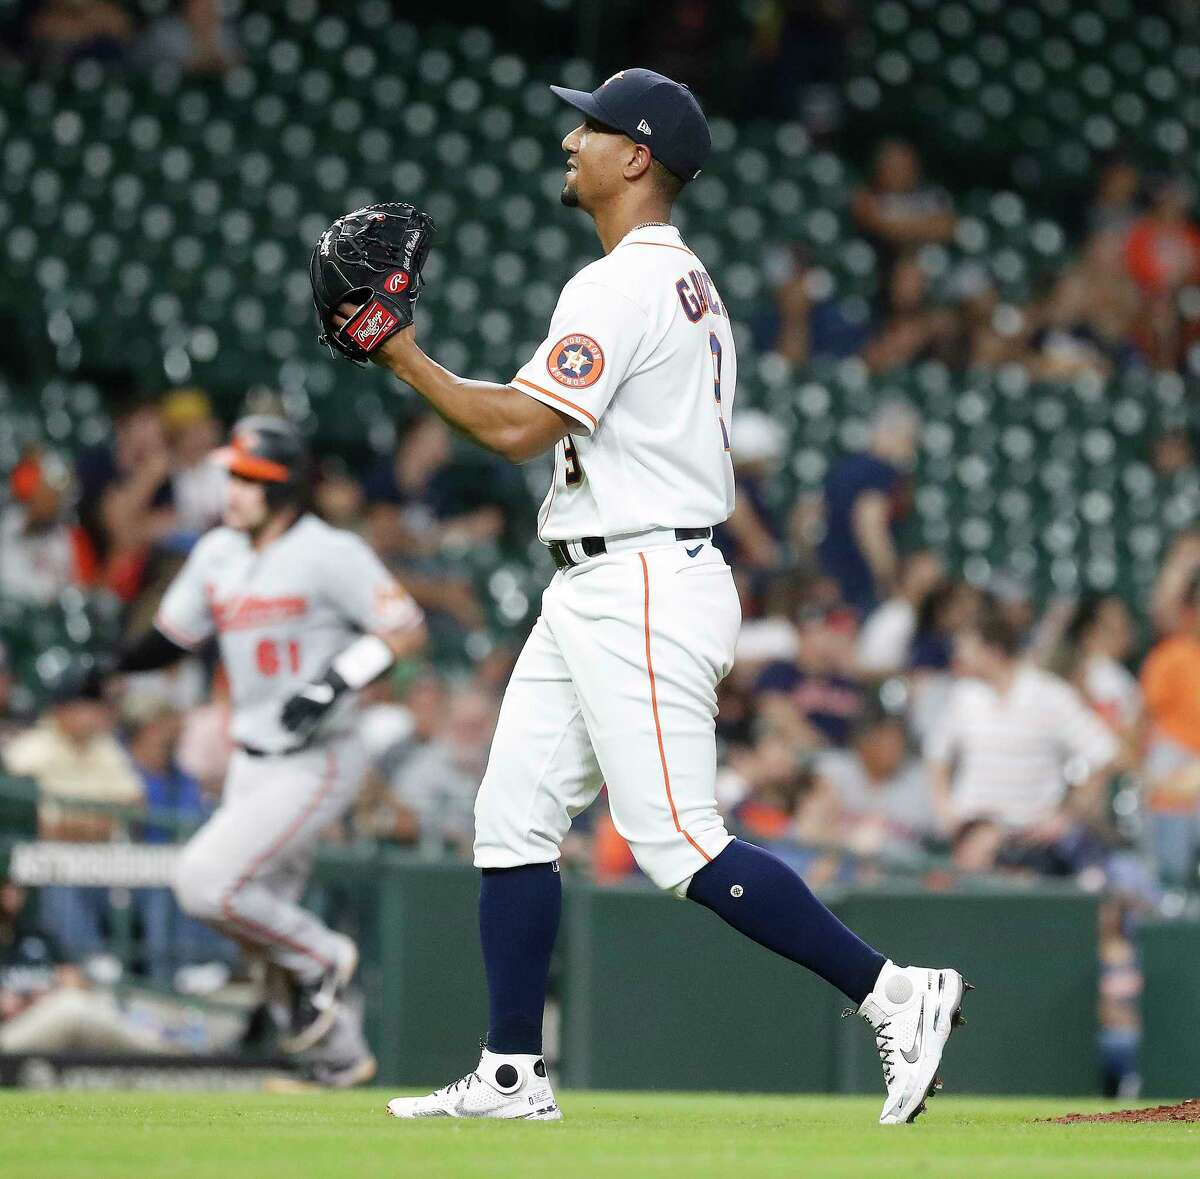 Houston Astros infielder Robel Garcia (9) reacts after giving up a home run to Baltimore Orioles catcher Austin Wynns as he pitched during the ninth inning of an MLB baseball game at Minute Maid Park, Tuesday, June 29, 2021, in Houston.